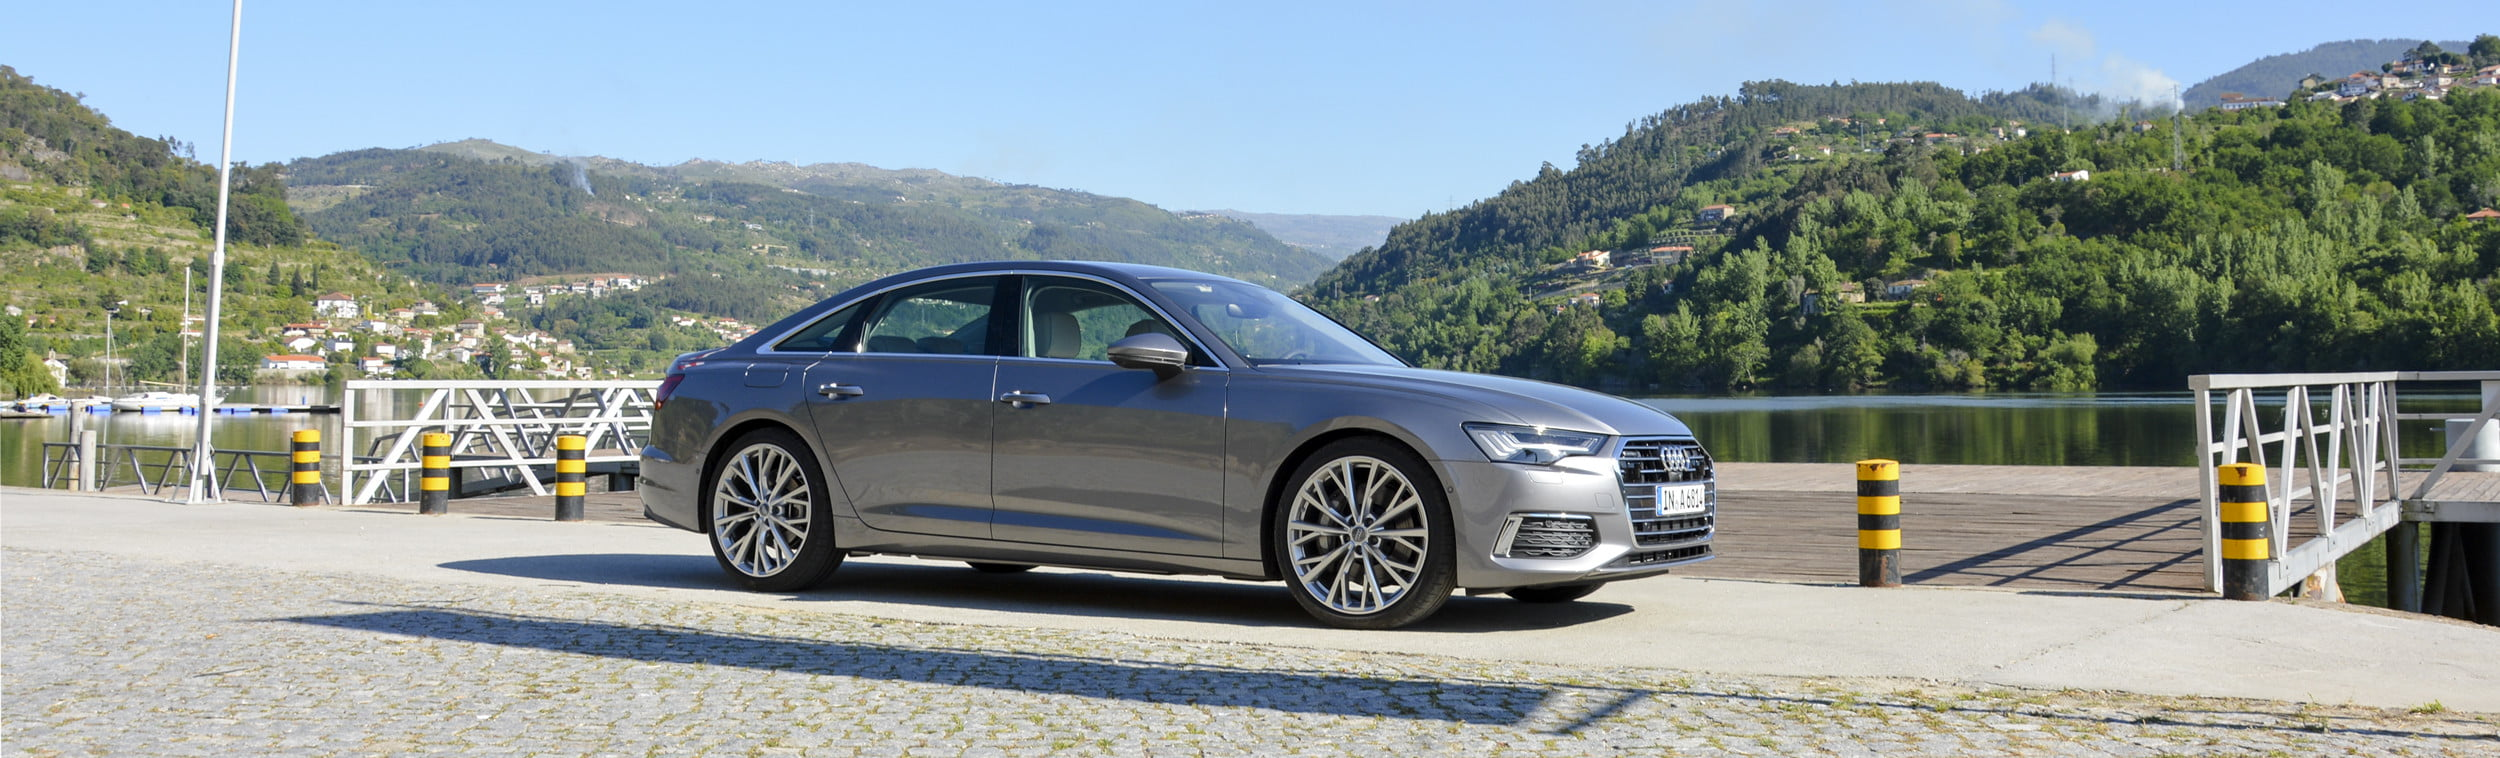 2019 Audi A6 first drive review | Digital Trends